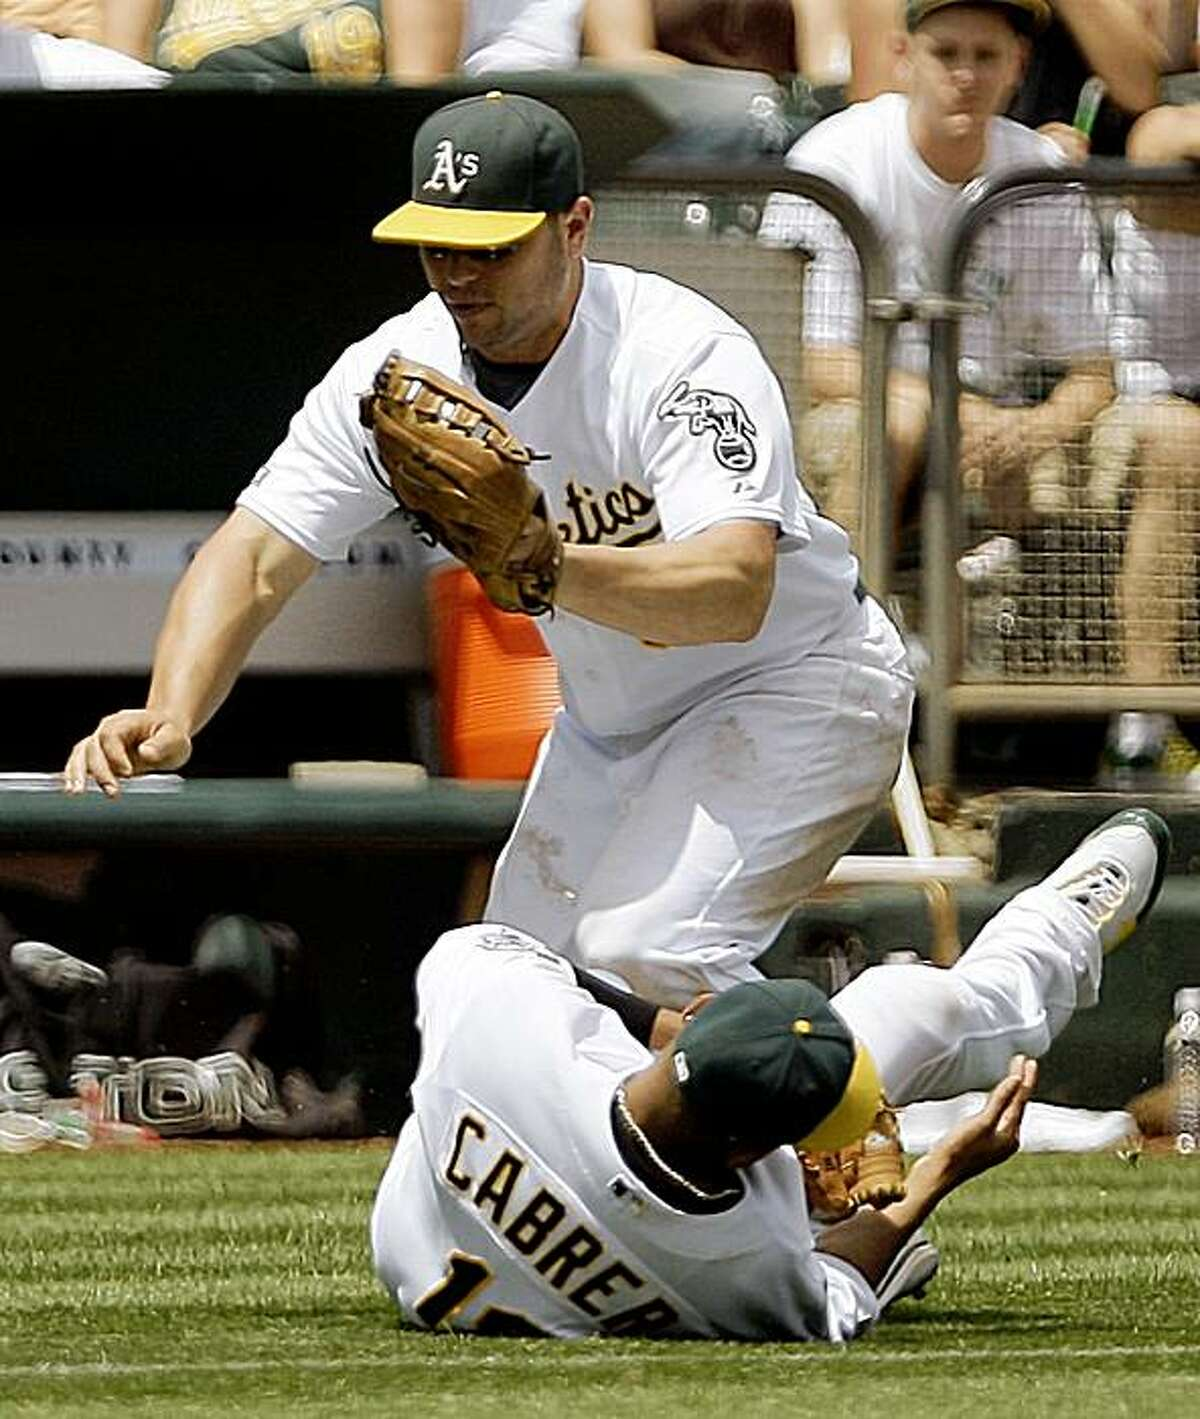 Oakland Athletics left fielder Matt Holliday, top, collides with shortstop Orlando Cabrera while both men attempt to field a ball hit by Los Angeles Angels' Reggie Willits in the third inning of a baseball game, Saturday, July 18, 2009, in Oakland, Calif. Holliday held on to the ball for the out. (AP Photo/Ben Margot)